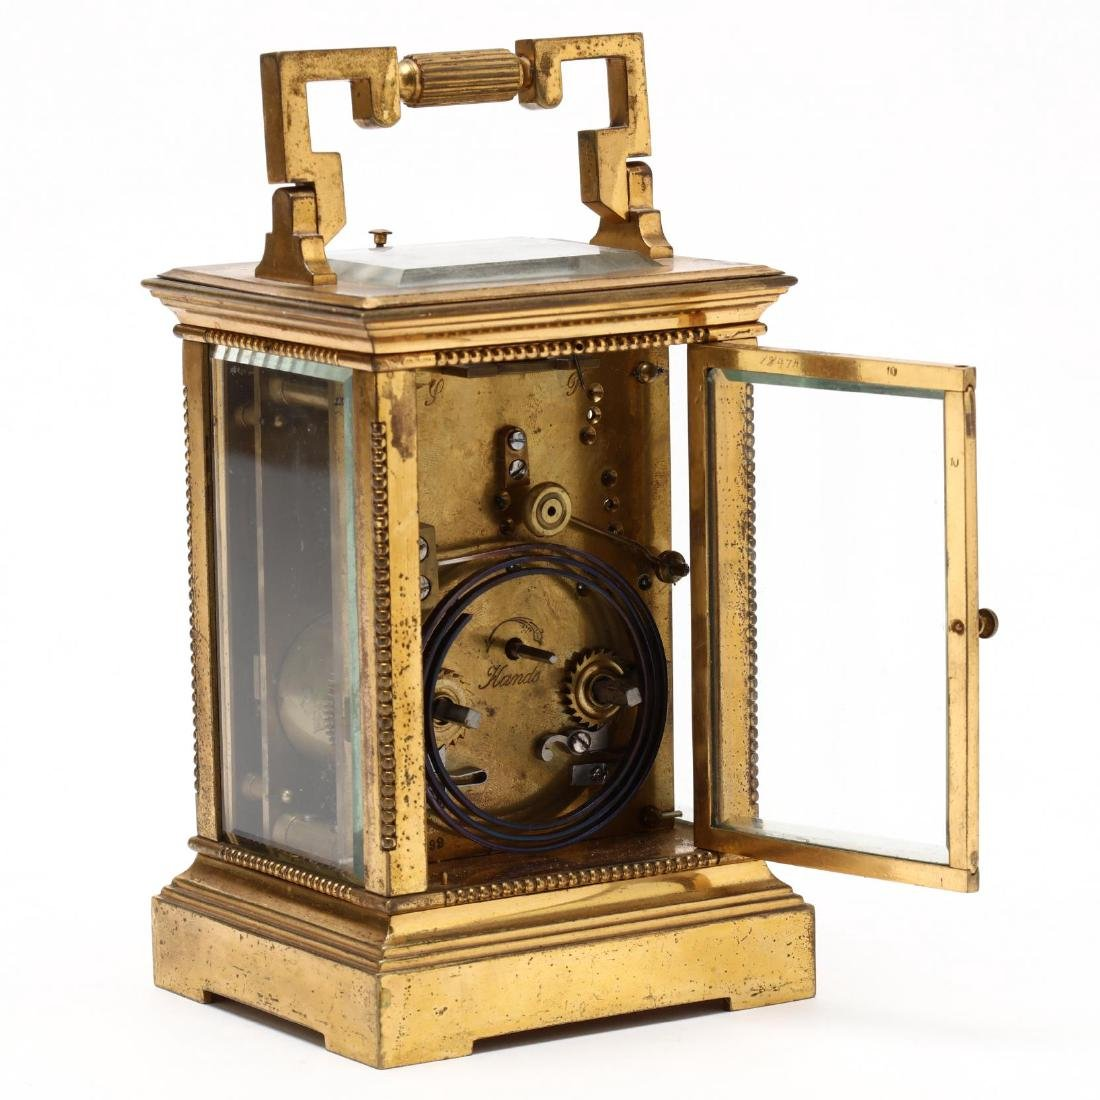 Mitchell Vance & Co., Gilt Bronze Carriage Clock - 4